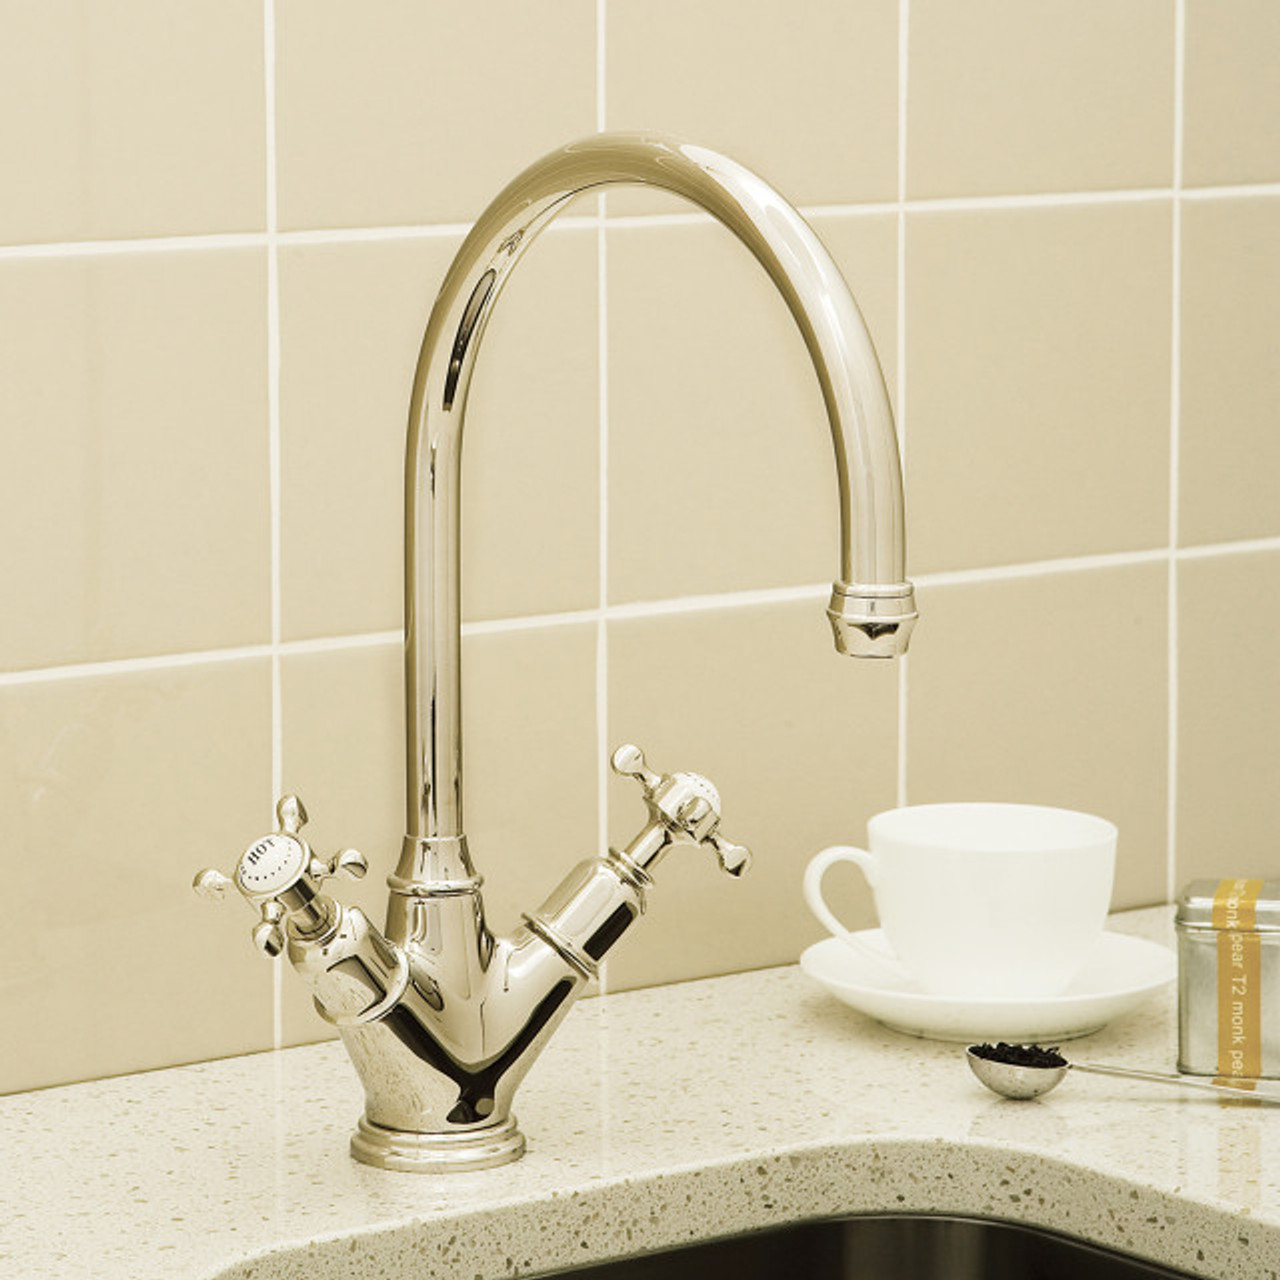 Perrin And Rowe Minoan 4385 Perrin And Rowe Kitchen Taps